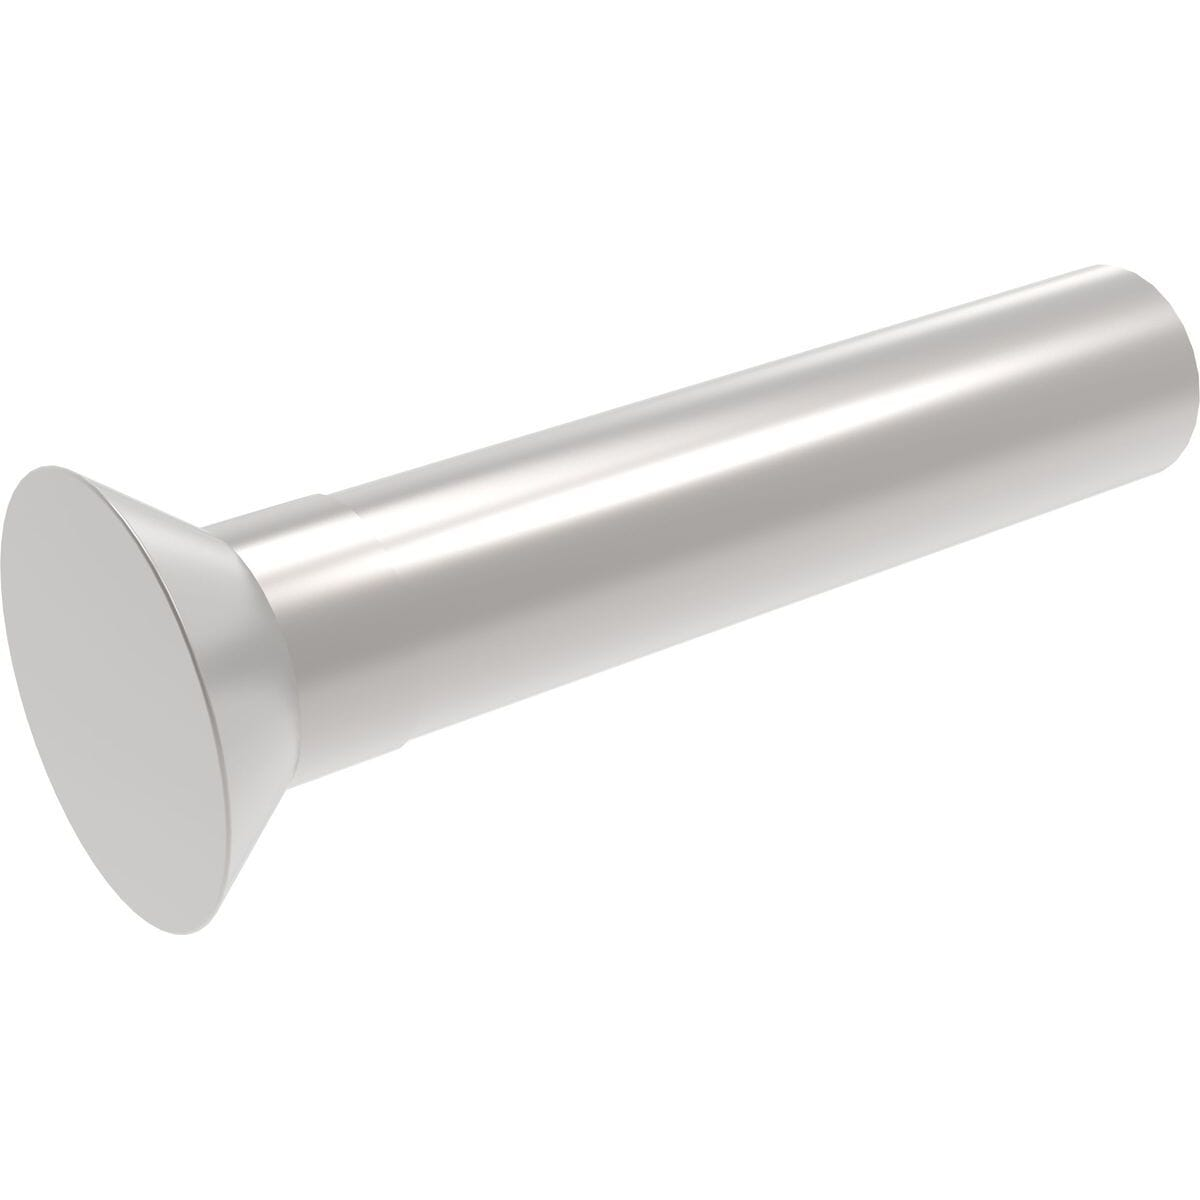 6mm x 40mm Countersunk Solid Rivets (DIN 661) - Stainless Steel (A2)